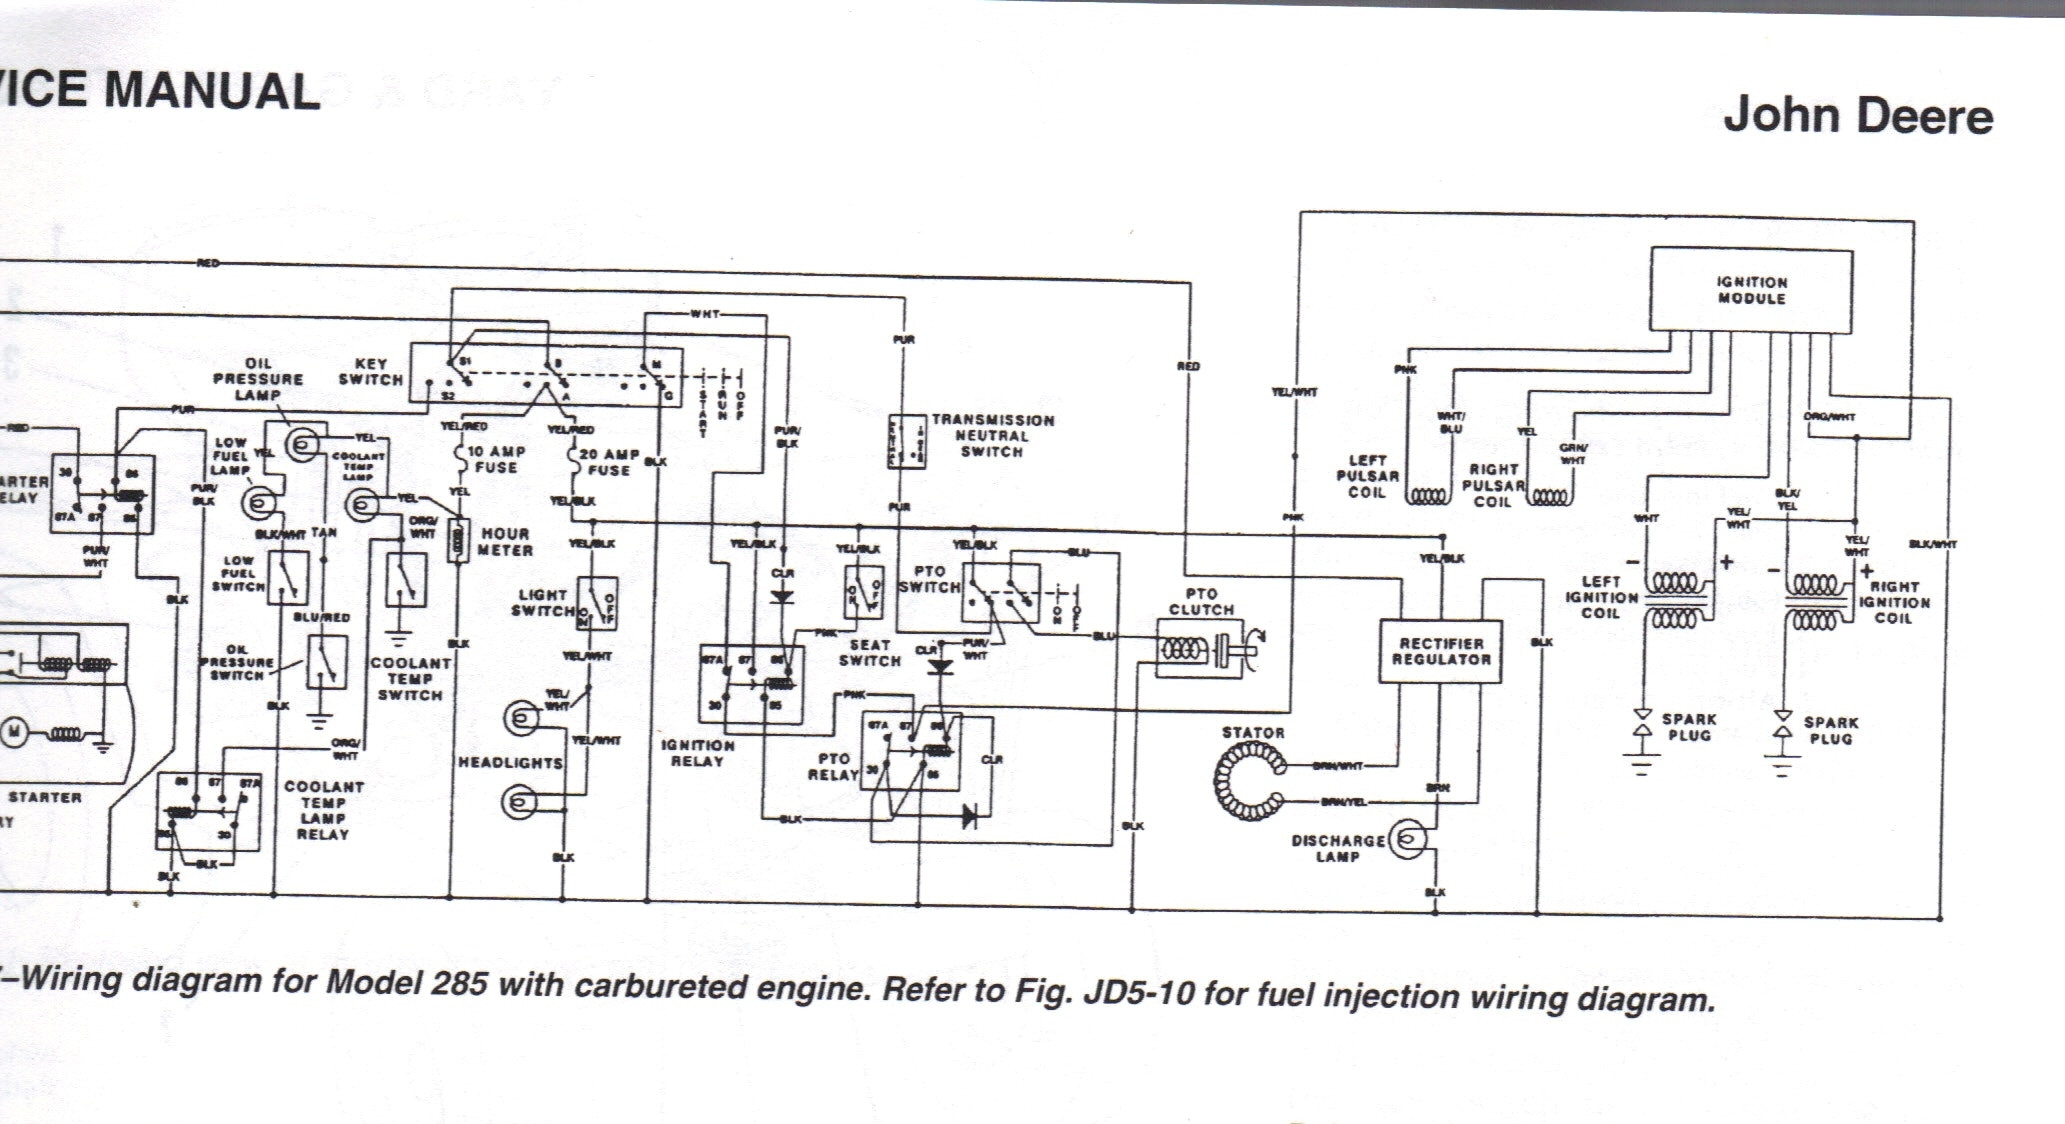 john deere lt155 wiring schematic free wiring diagram. Black Bedroom Furniture Sets. Home Design Ideas